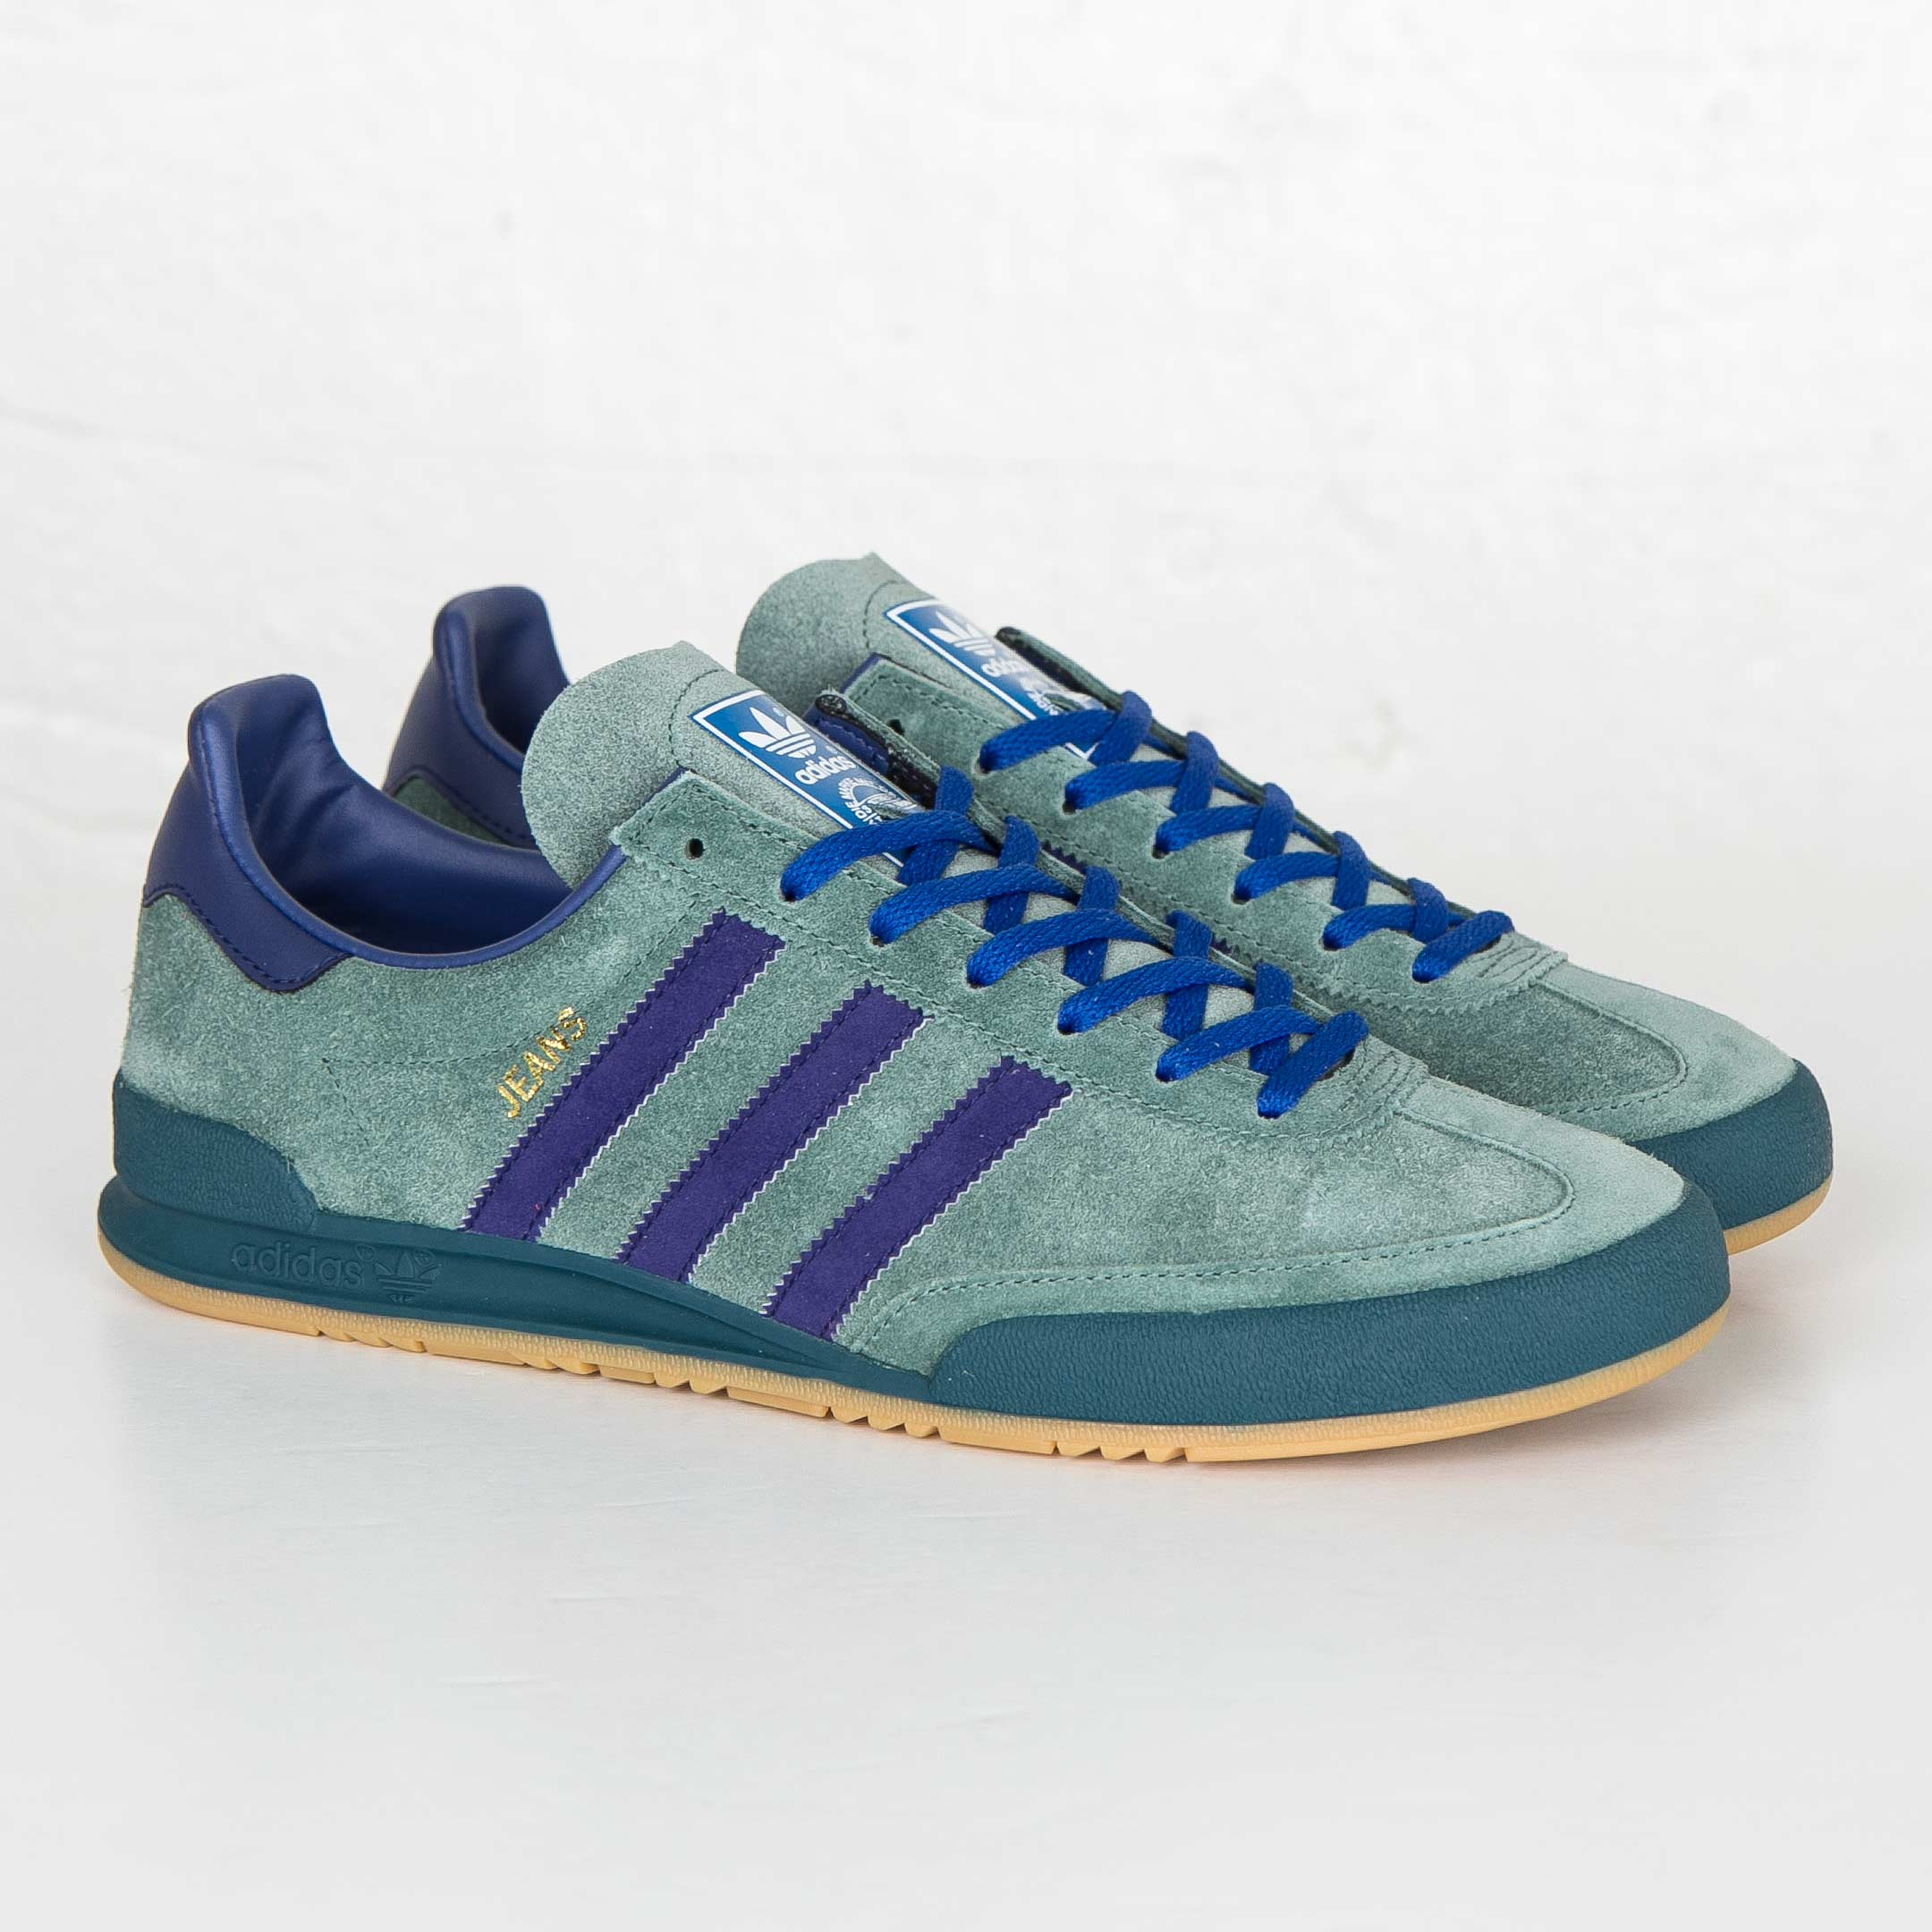 adidas Jeans MkII - S74805